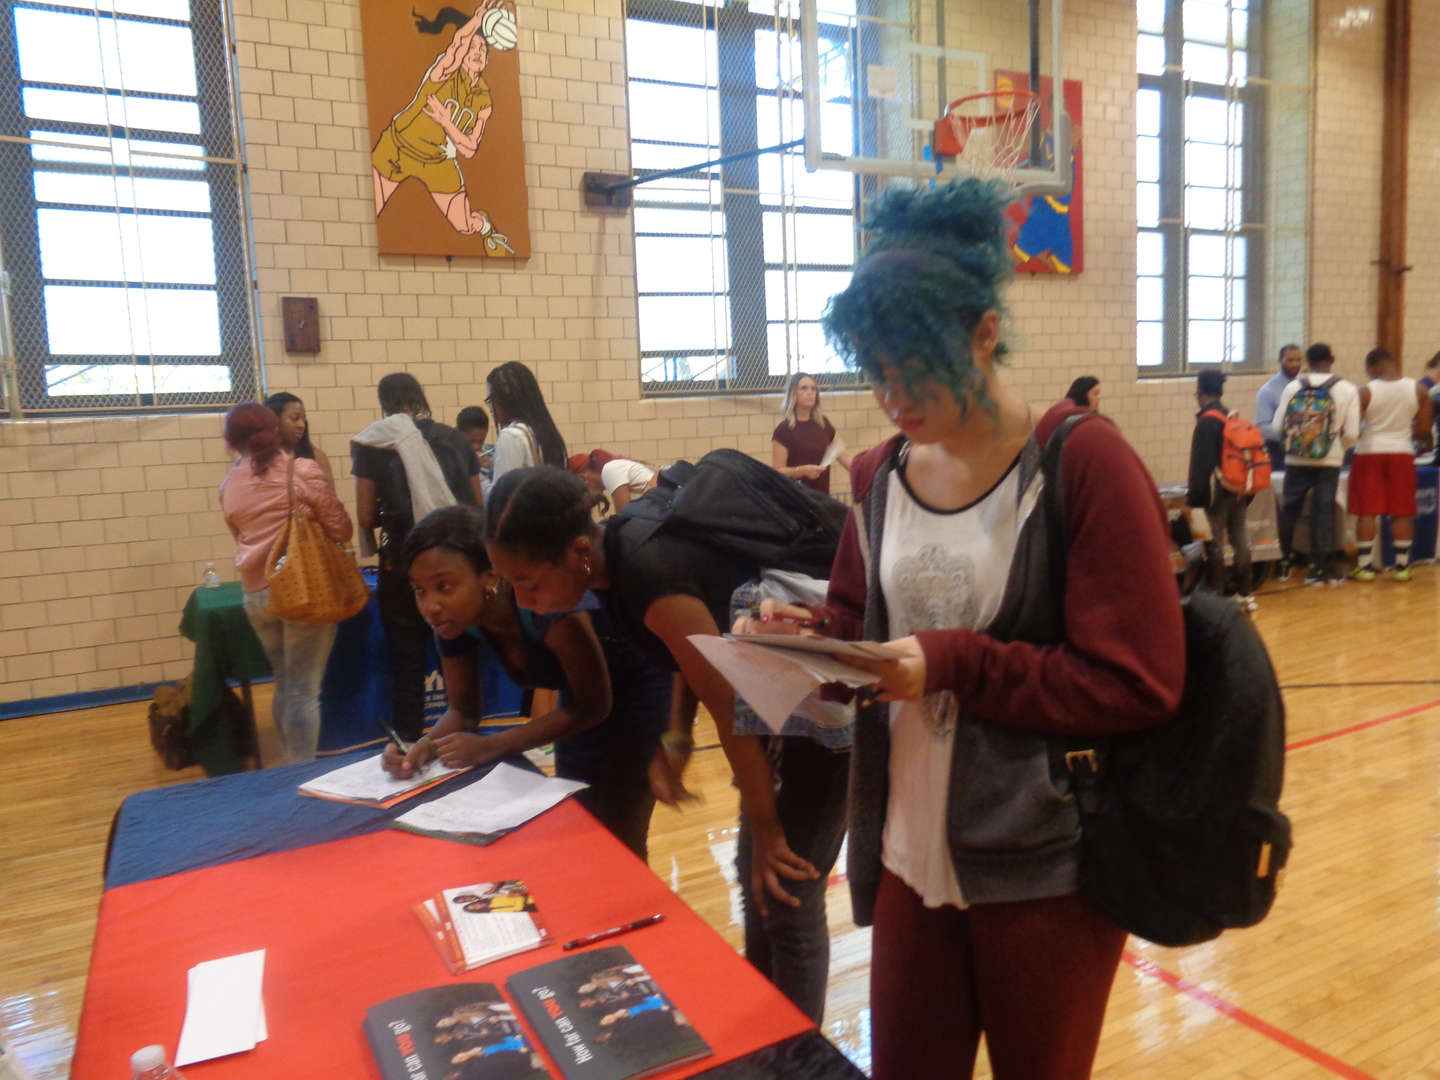 Students explore college options at our first college fair.